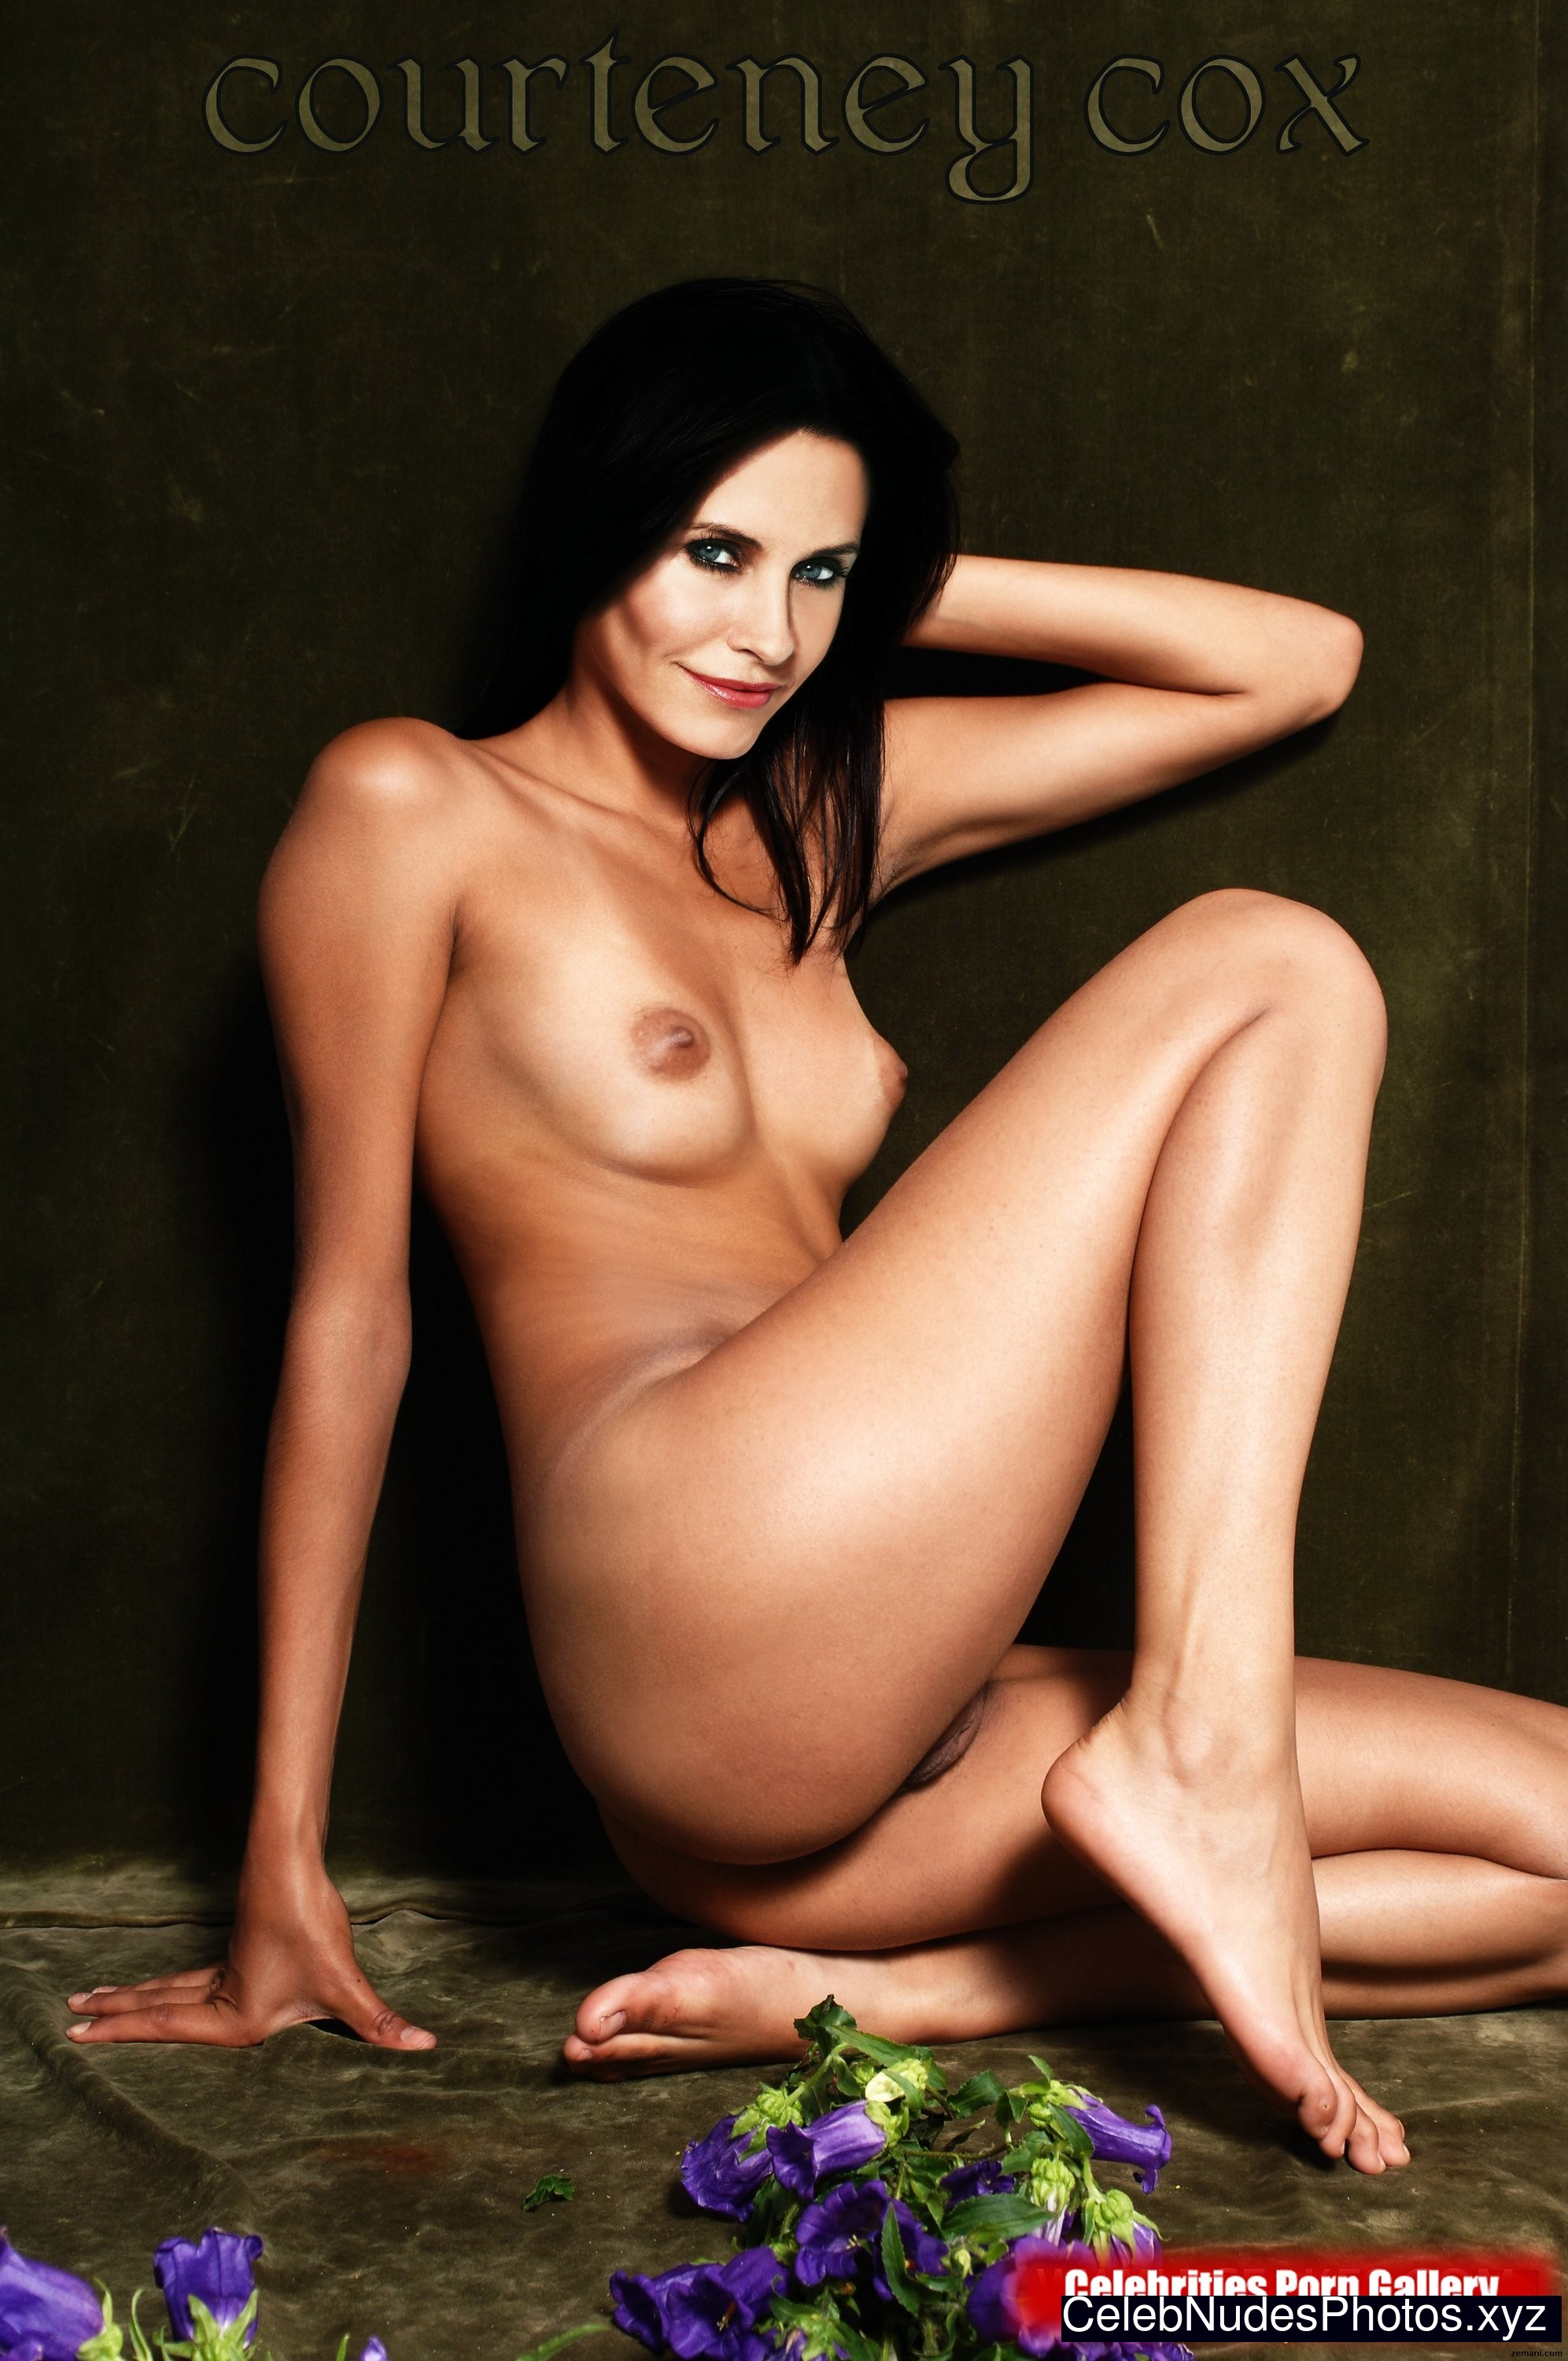 courtney cox nude